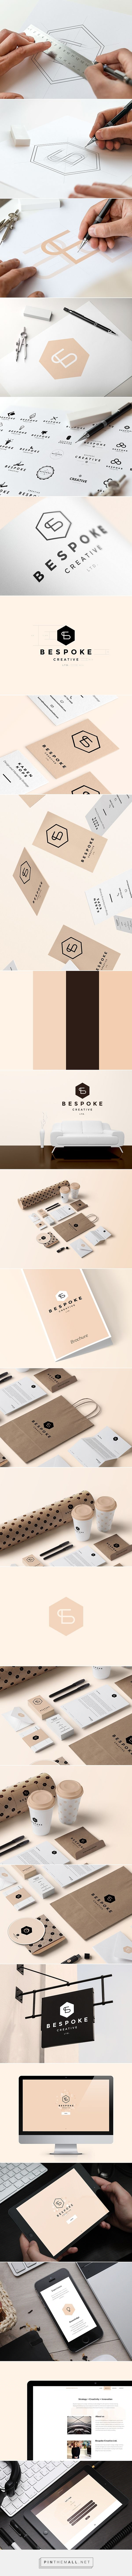 Bespoke Creative Ltd. - Branding & Website on Behance... - a grouped images picture - Pin Them All